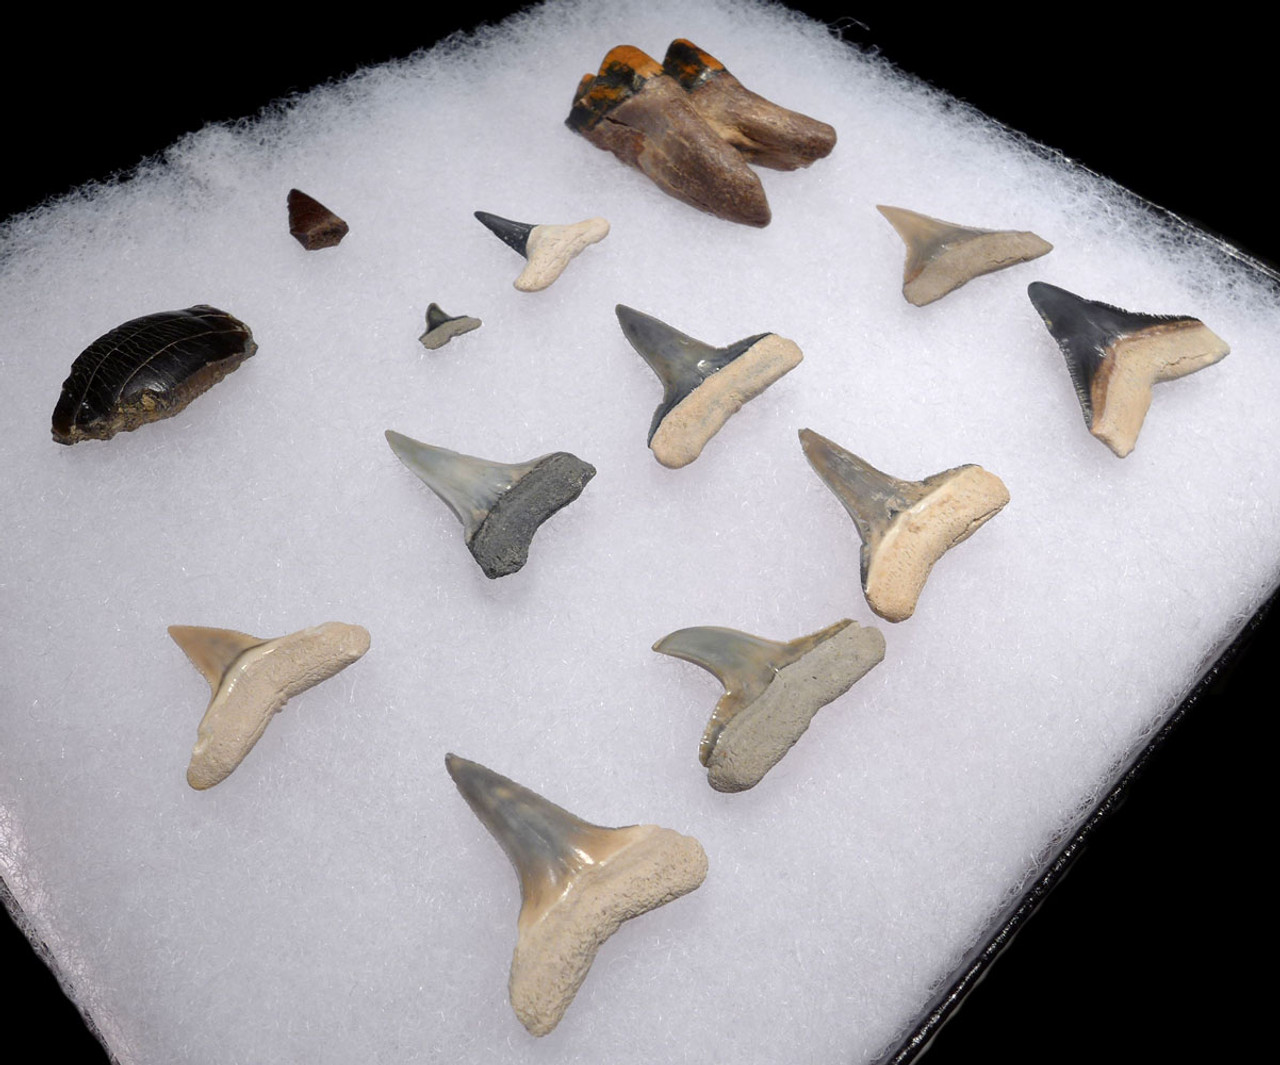 SHARK FISH AND MAMMAL TEETH FOSSILS FROM THE FAMOUS BONE VALLEY FORMATION *SHX084